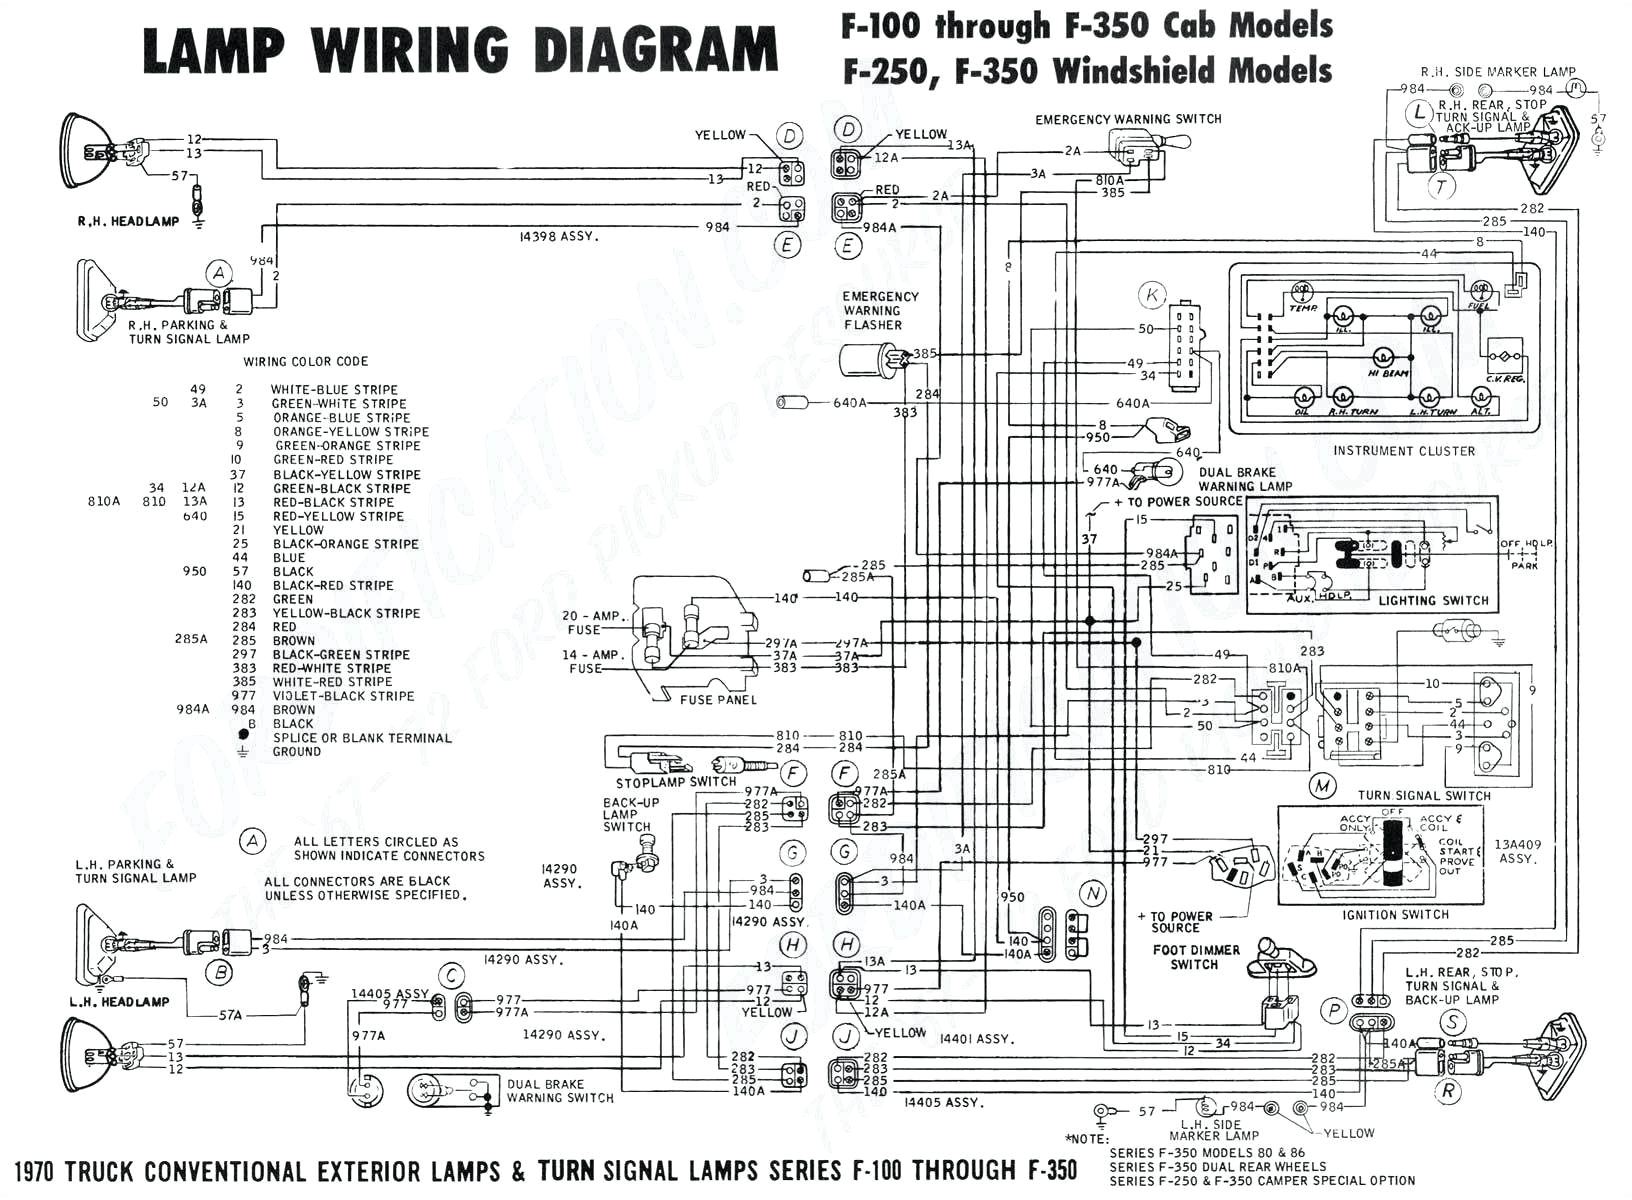 95 F150 Fuel Pump Wiring Diagram 1995 F250 Wiring Diagram Data Schematic Diagram